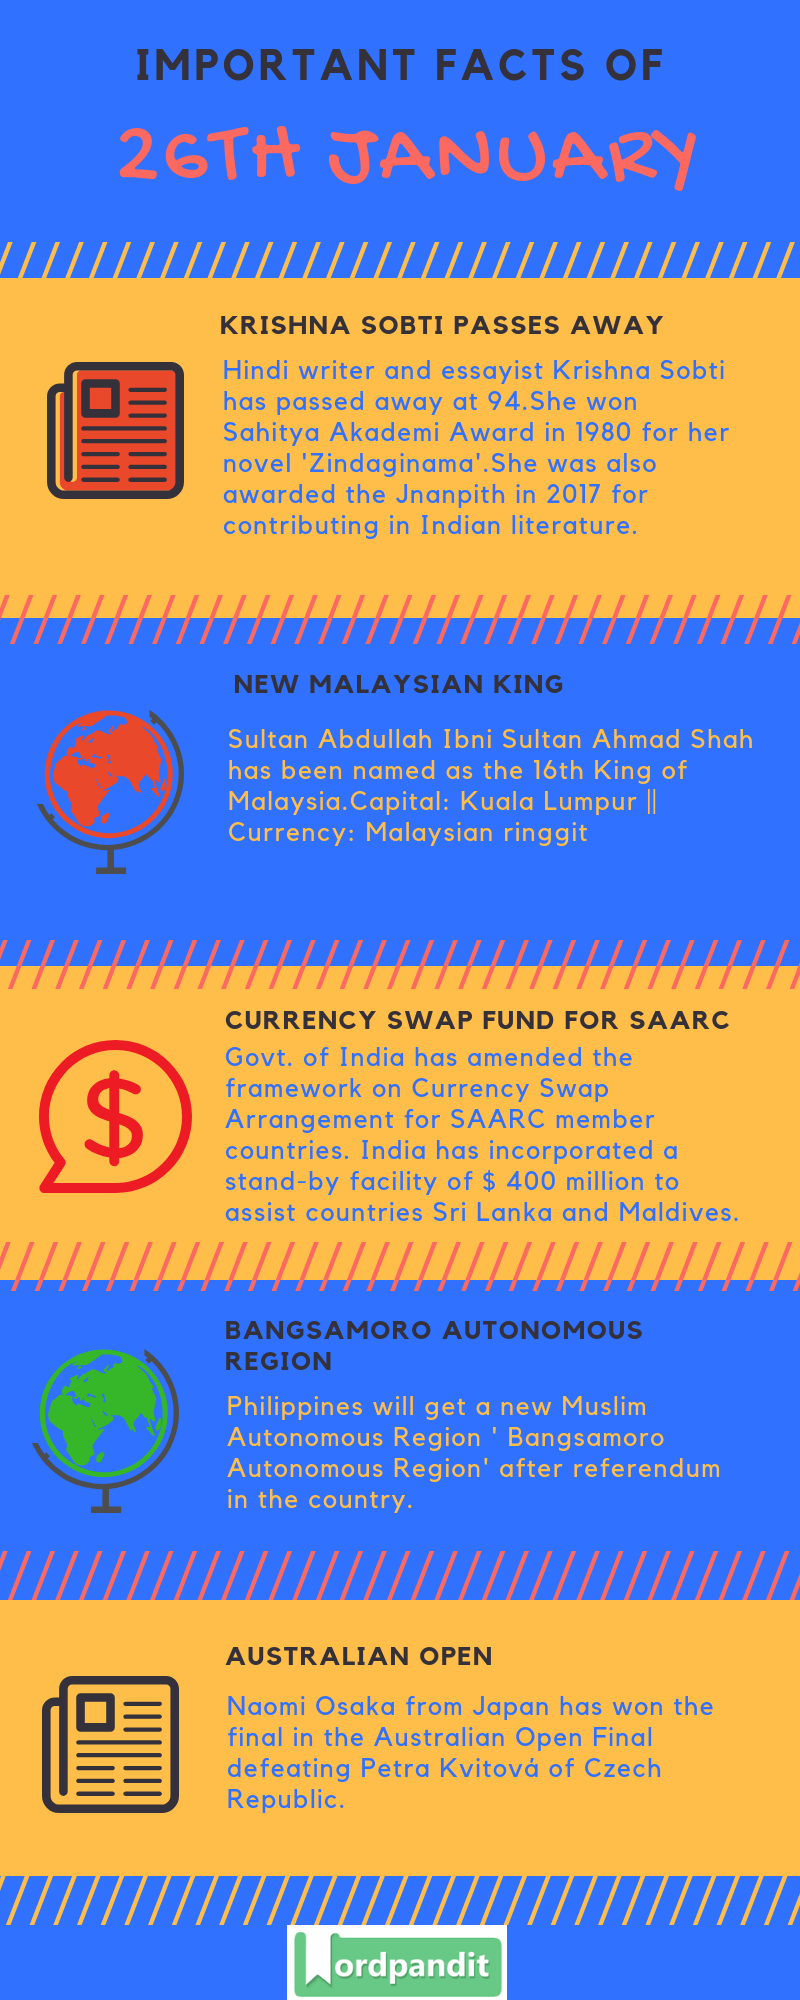 Daily Current Affairs 26 January 2019 Current Affairs Quiz 26 January 2019 Current Affairs Infographic